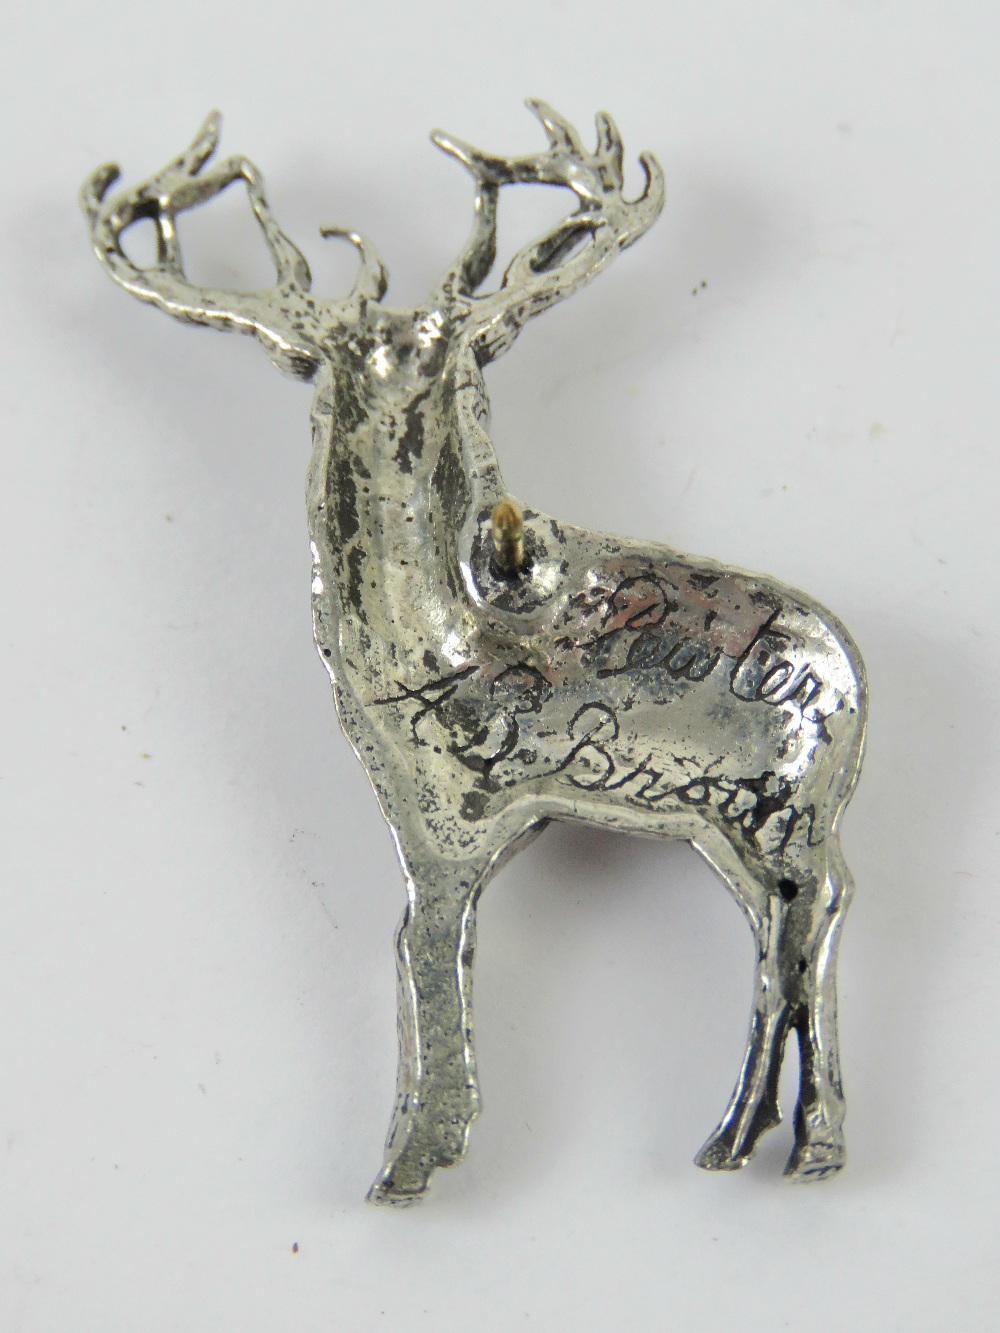 A pewter brooch in the form of a stag by AB Brown, in presentation box. - Image 2 of 3